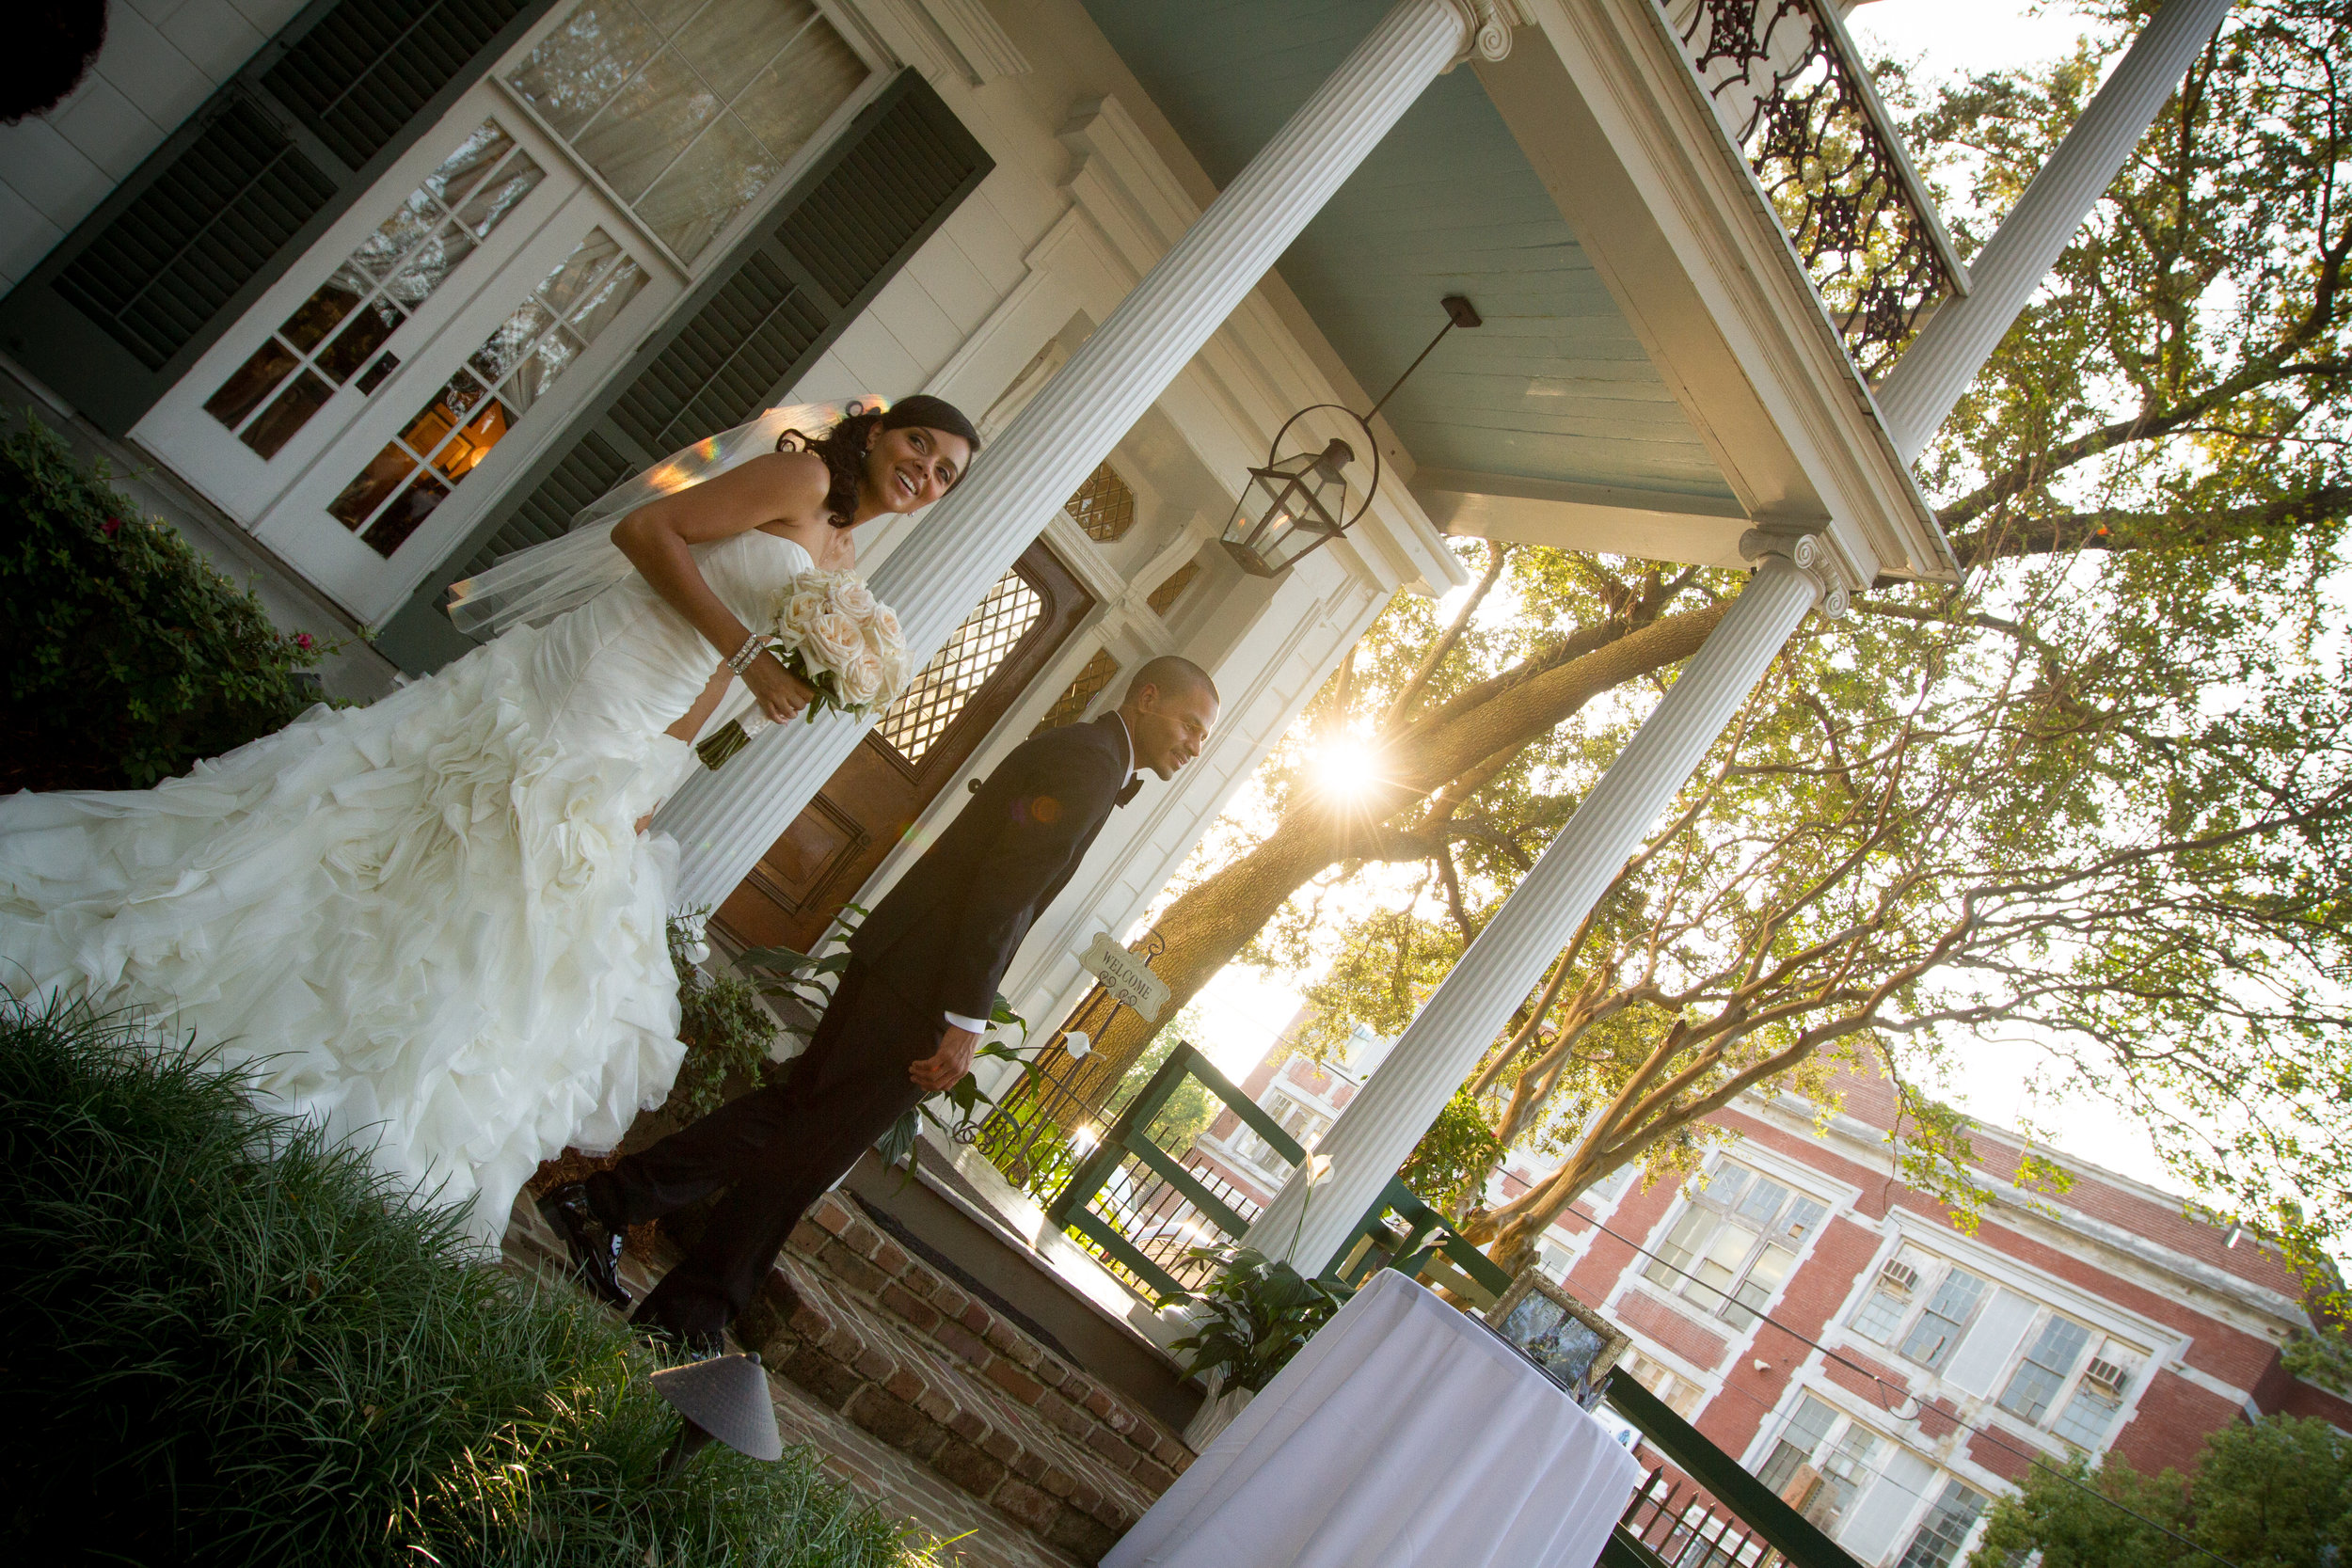 320-ms-bride n groom.jpg